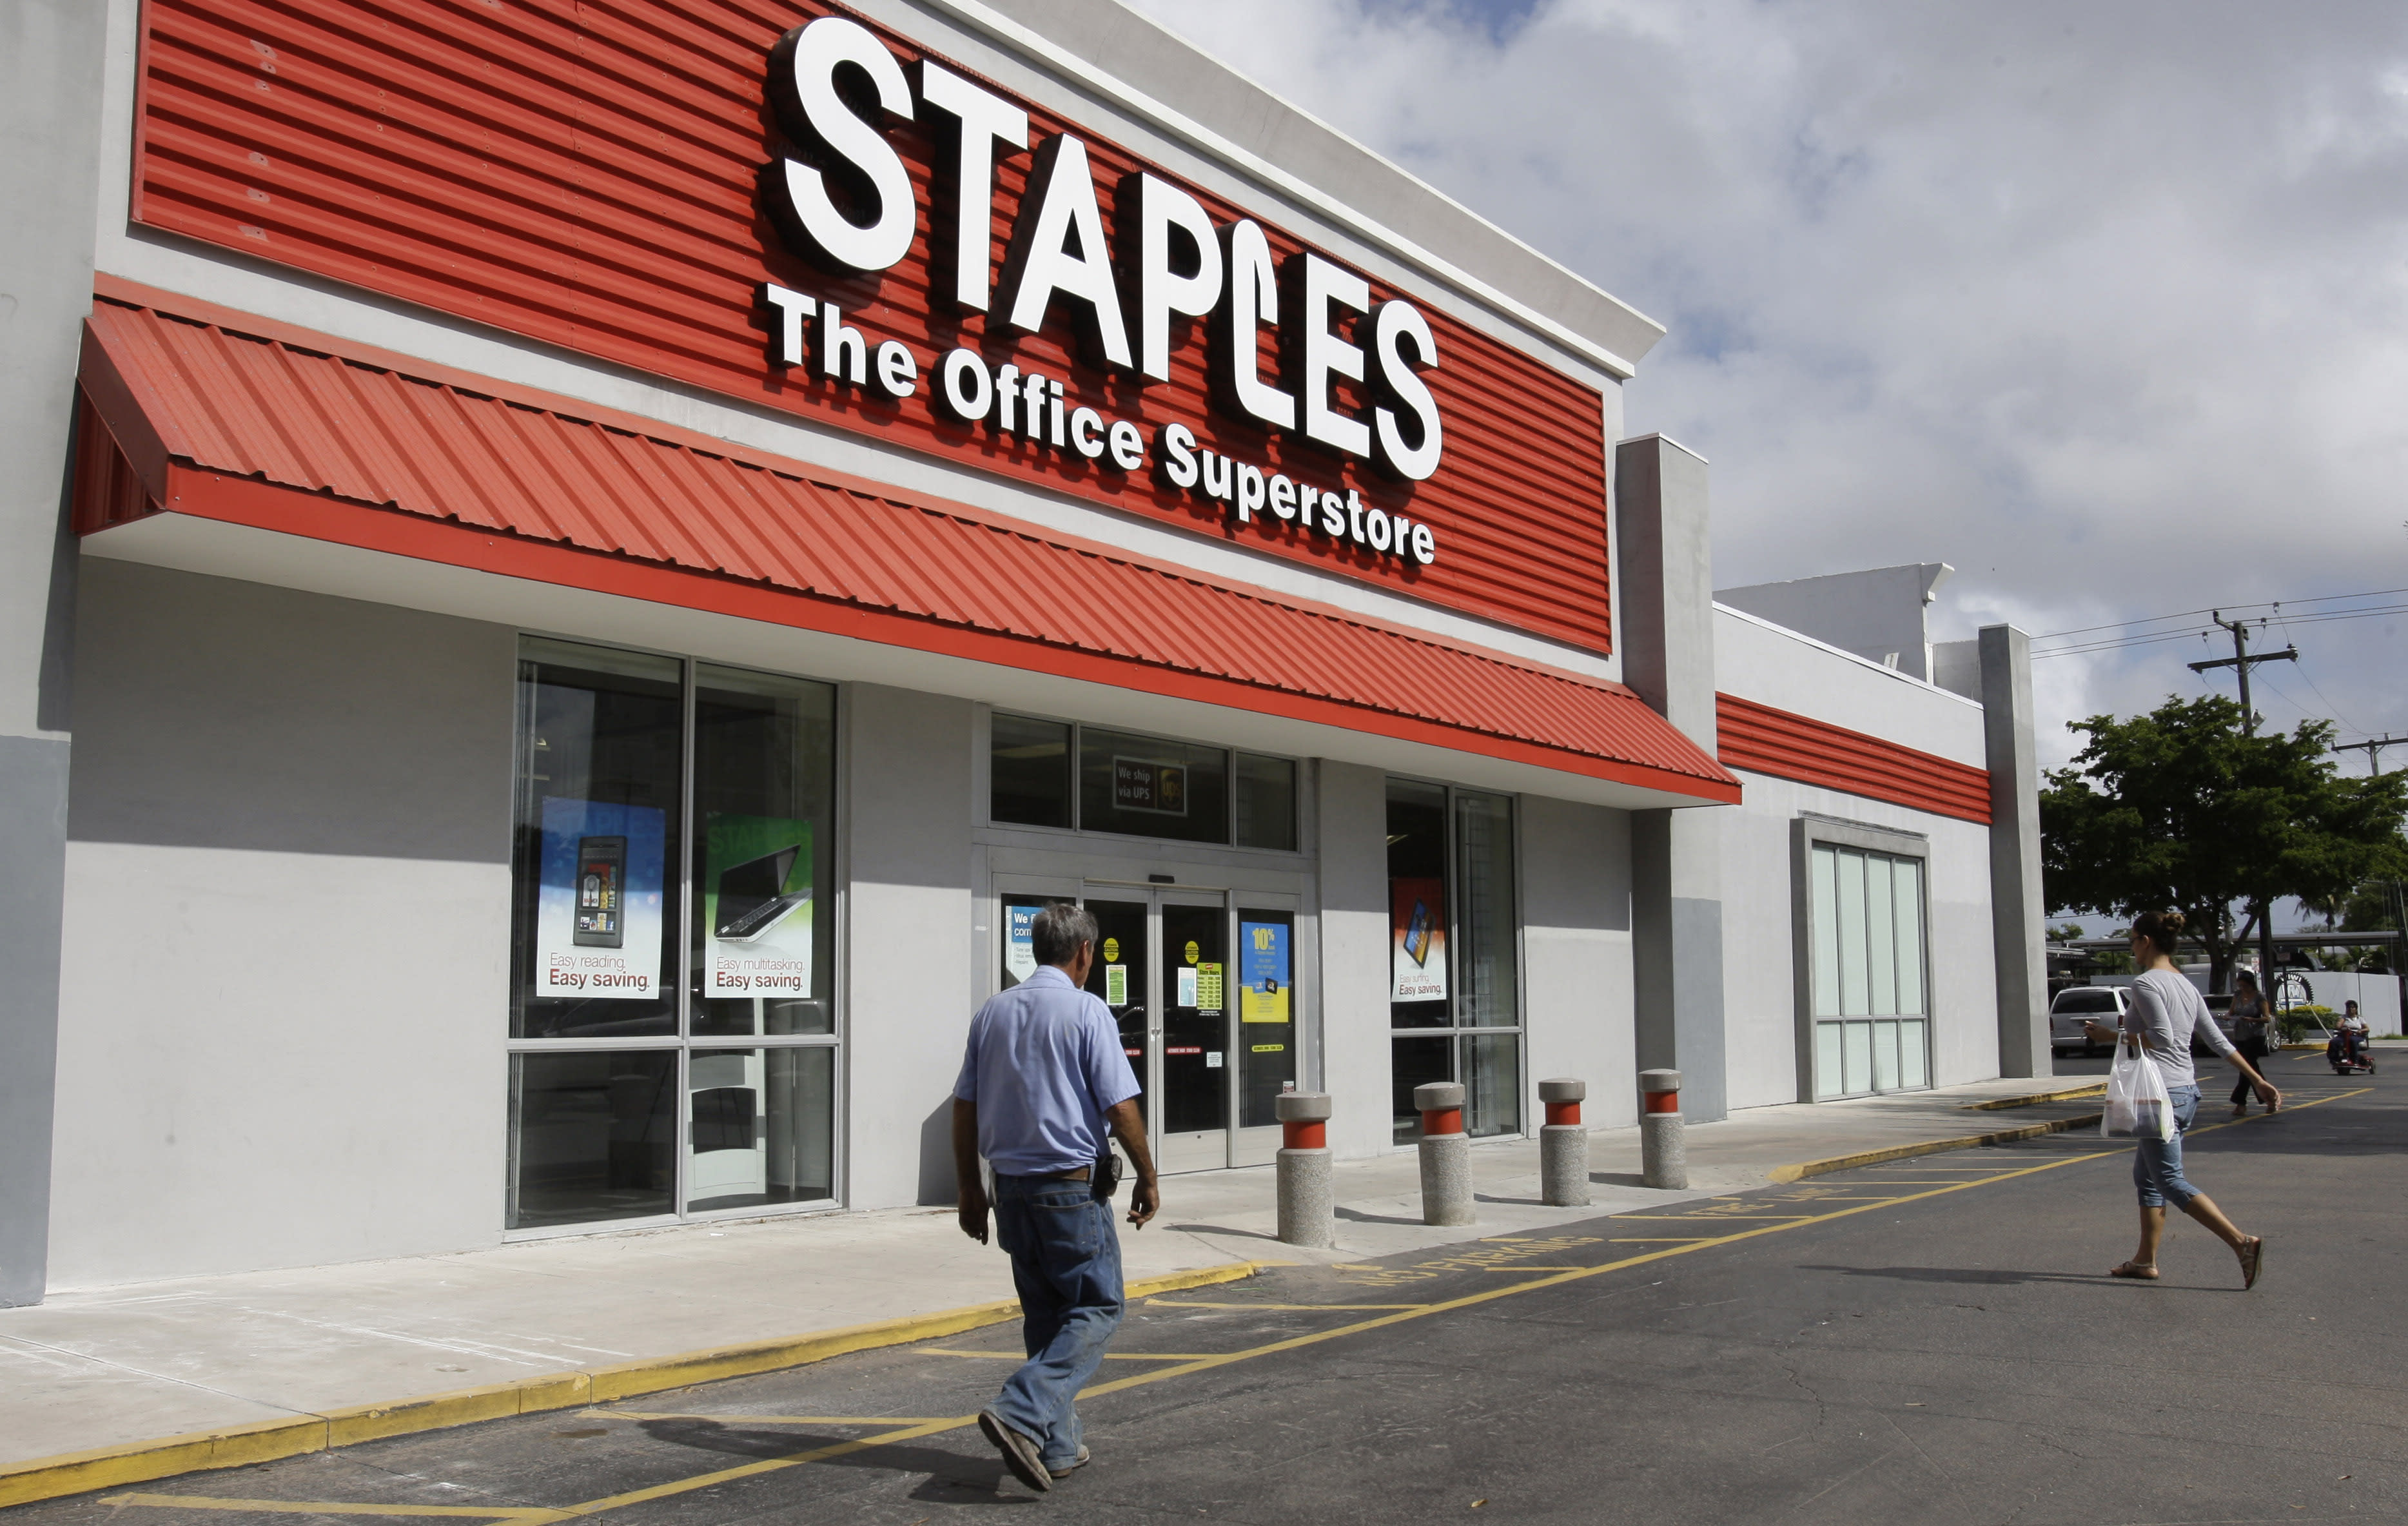 Staples: Customer data exposed in security breach